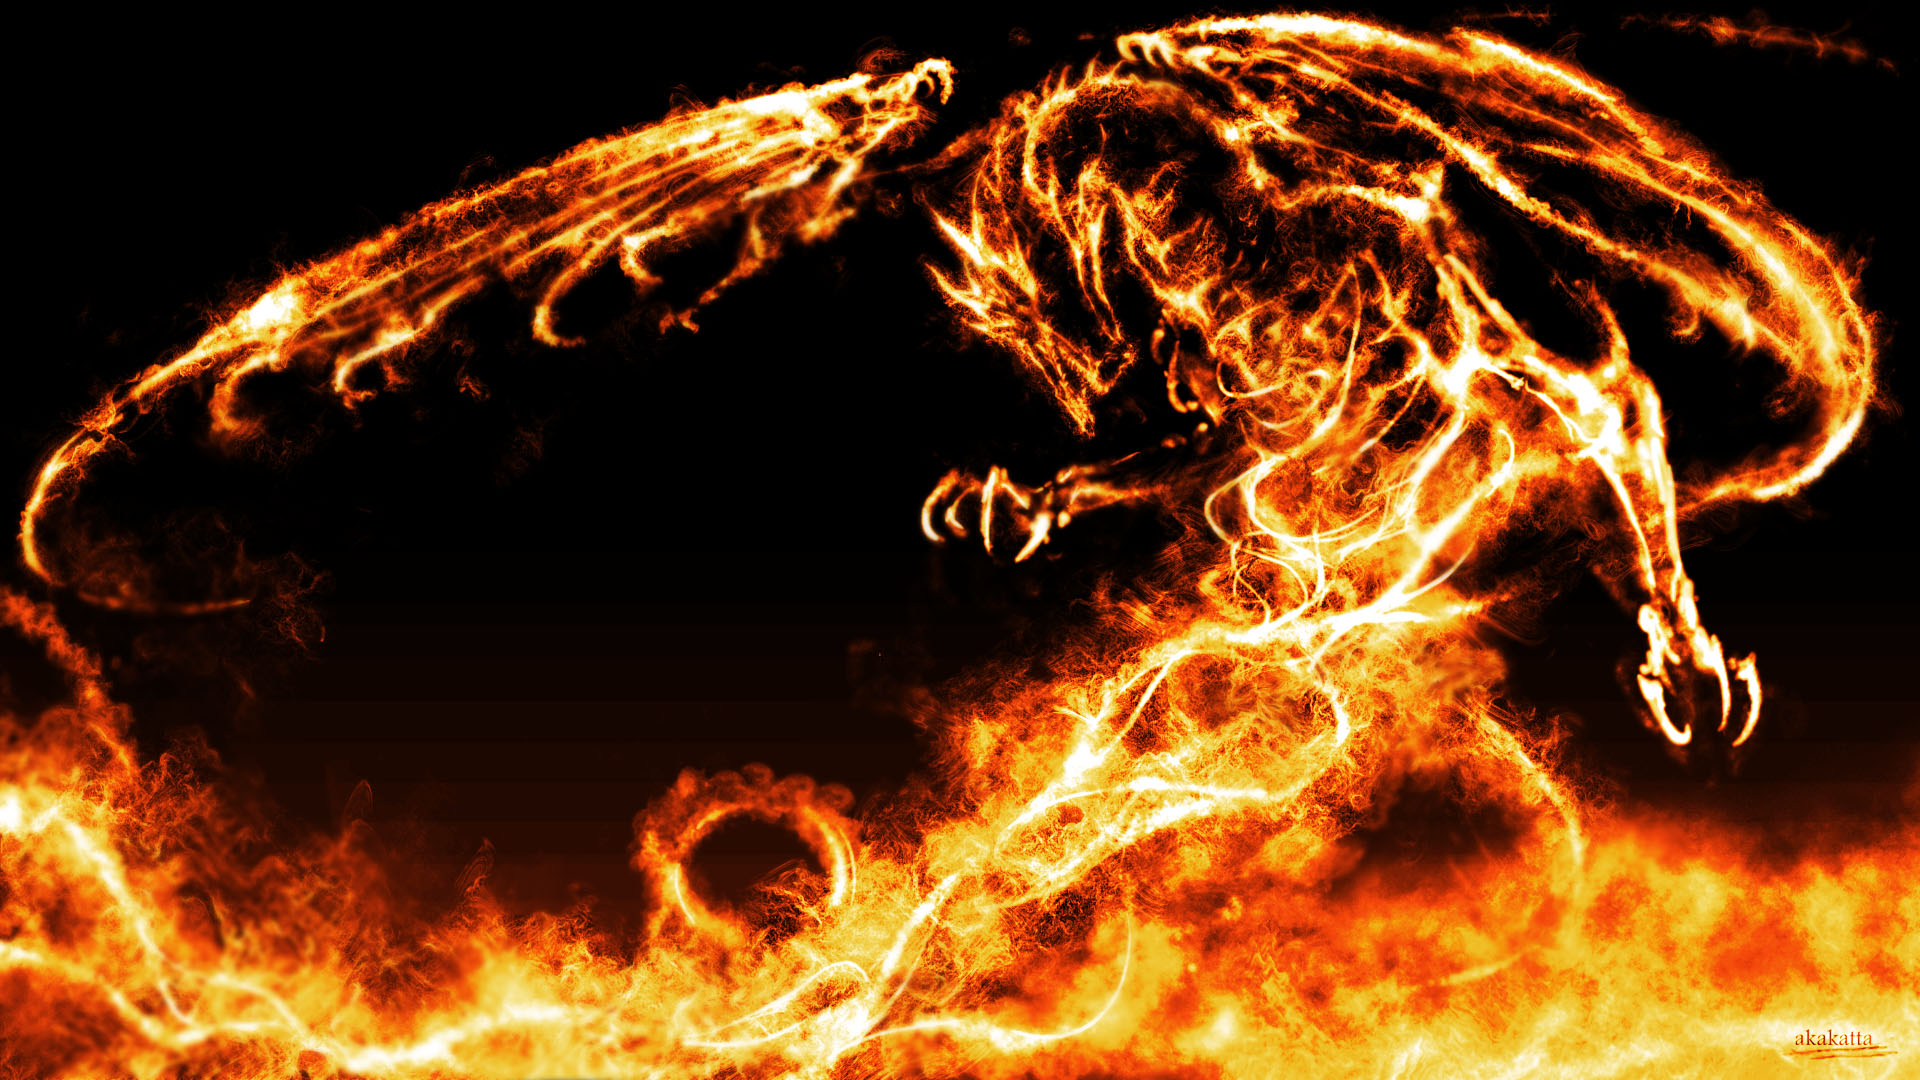 50 3d Flames Wallpaper On Wallpapersafari